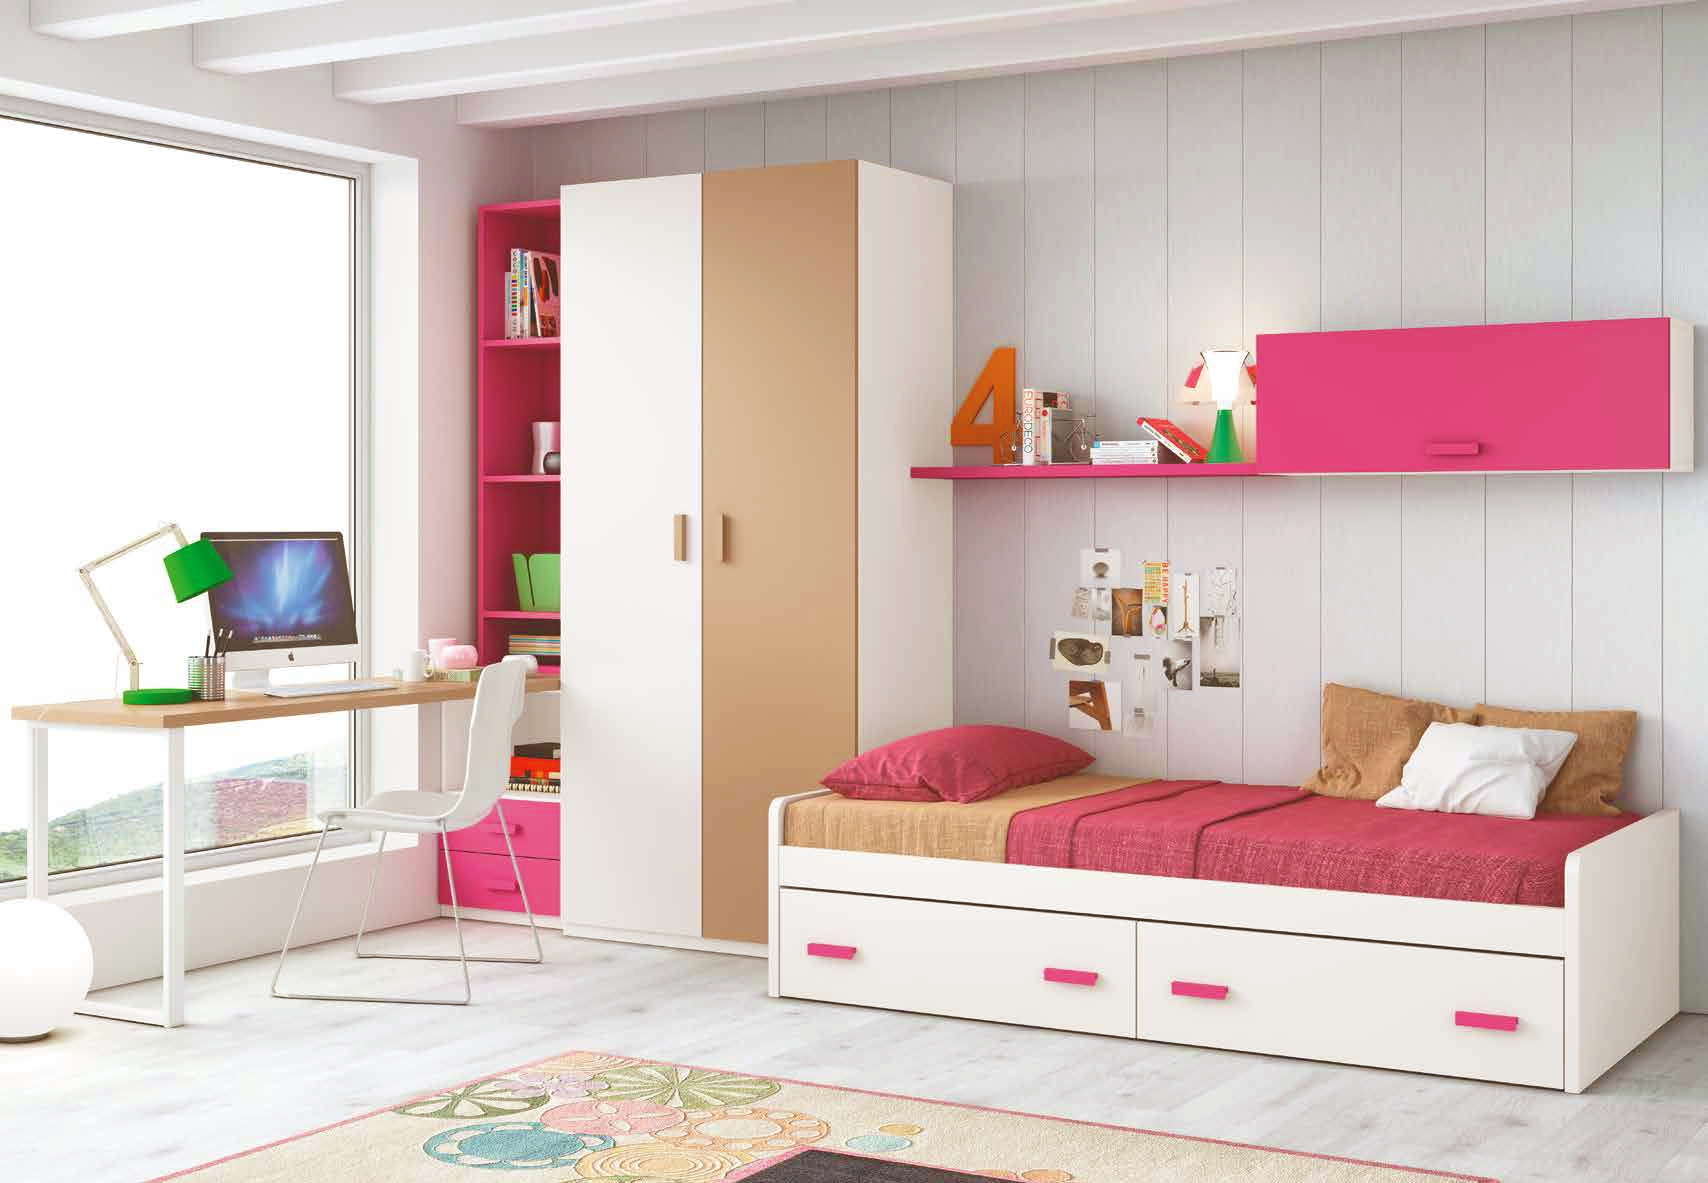 Emejing chambre pour fille ado pictures design trends for Chambre fille design